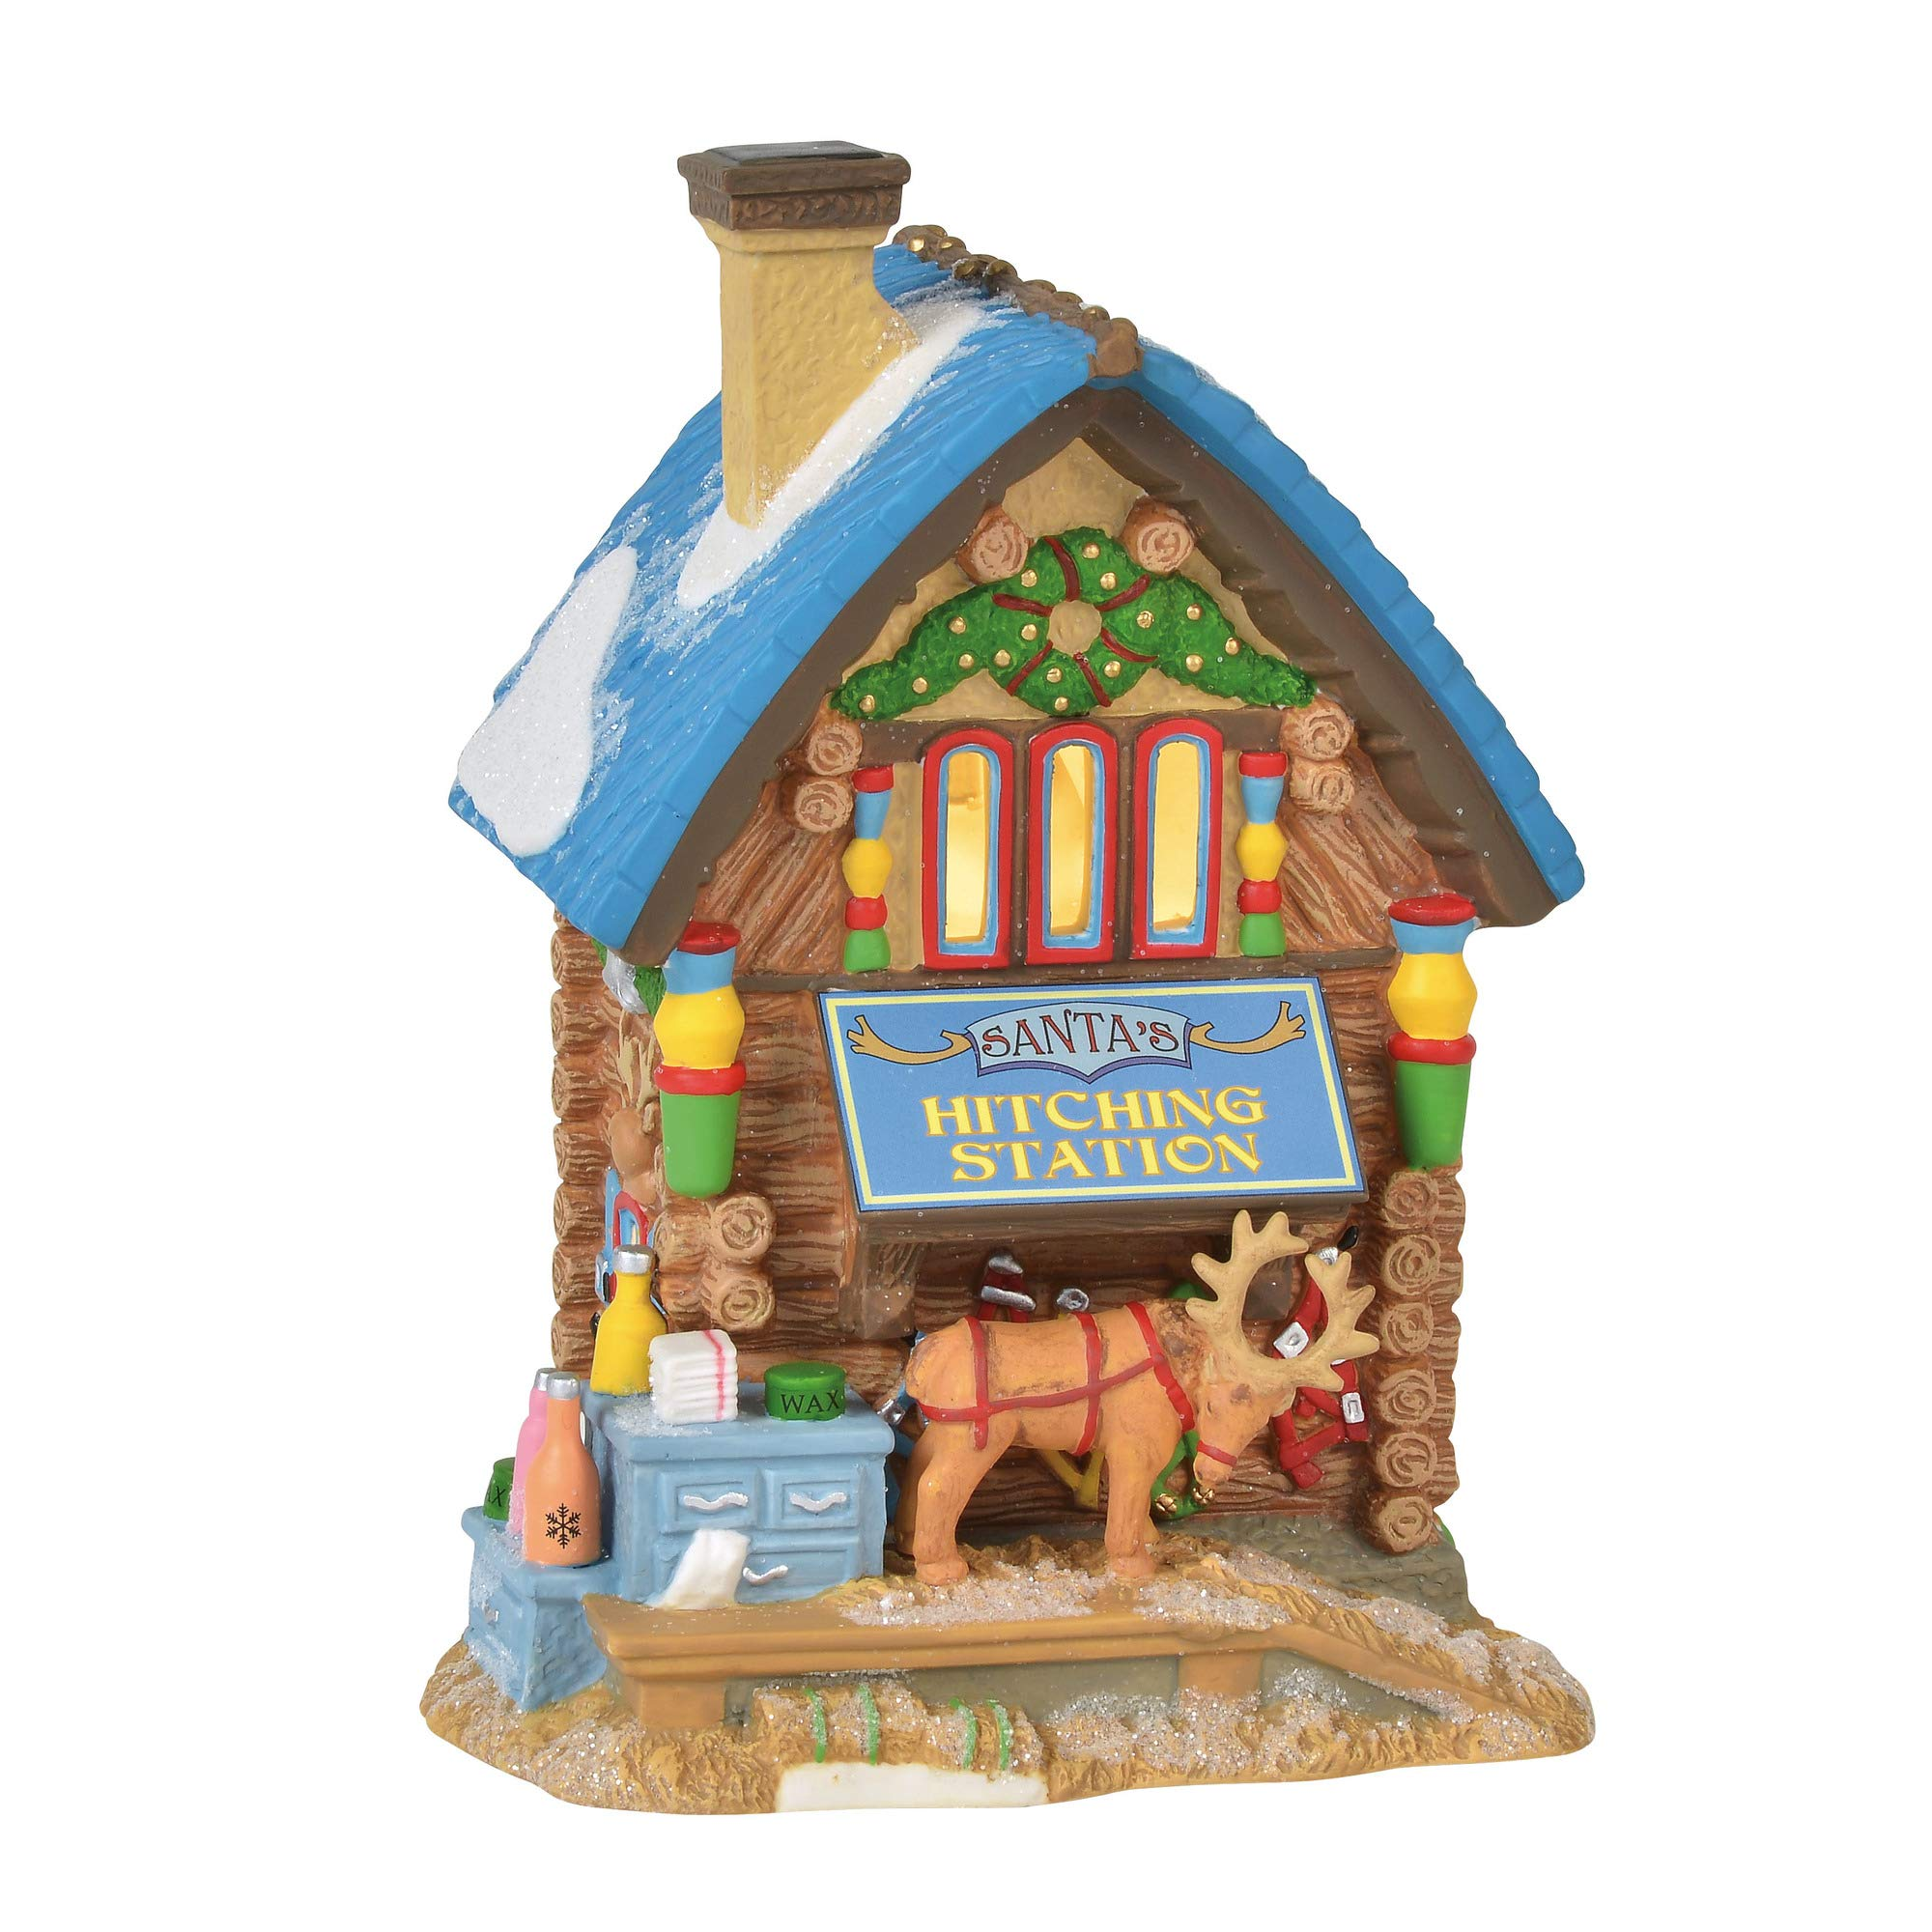 Department 56 North Pole Village Series Santa's Hitching Station Lit Building 6.75'' Multicolor